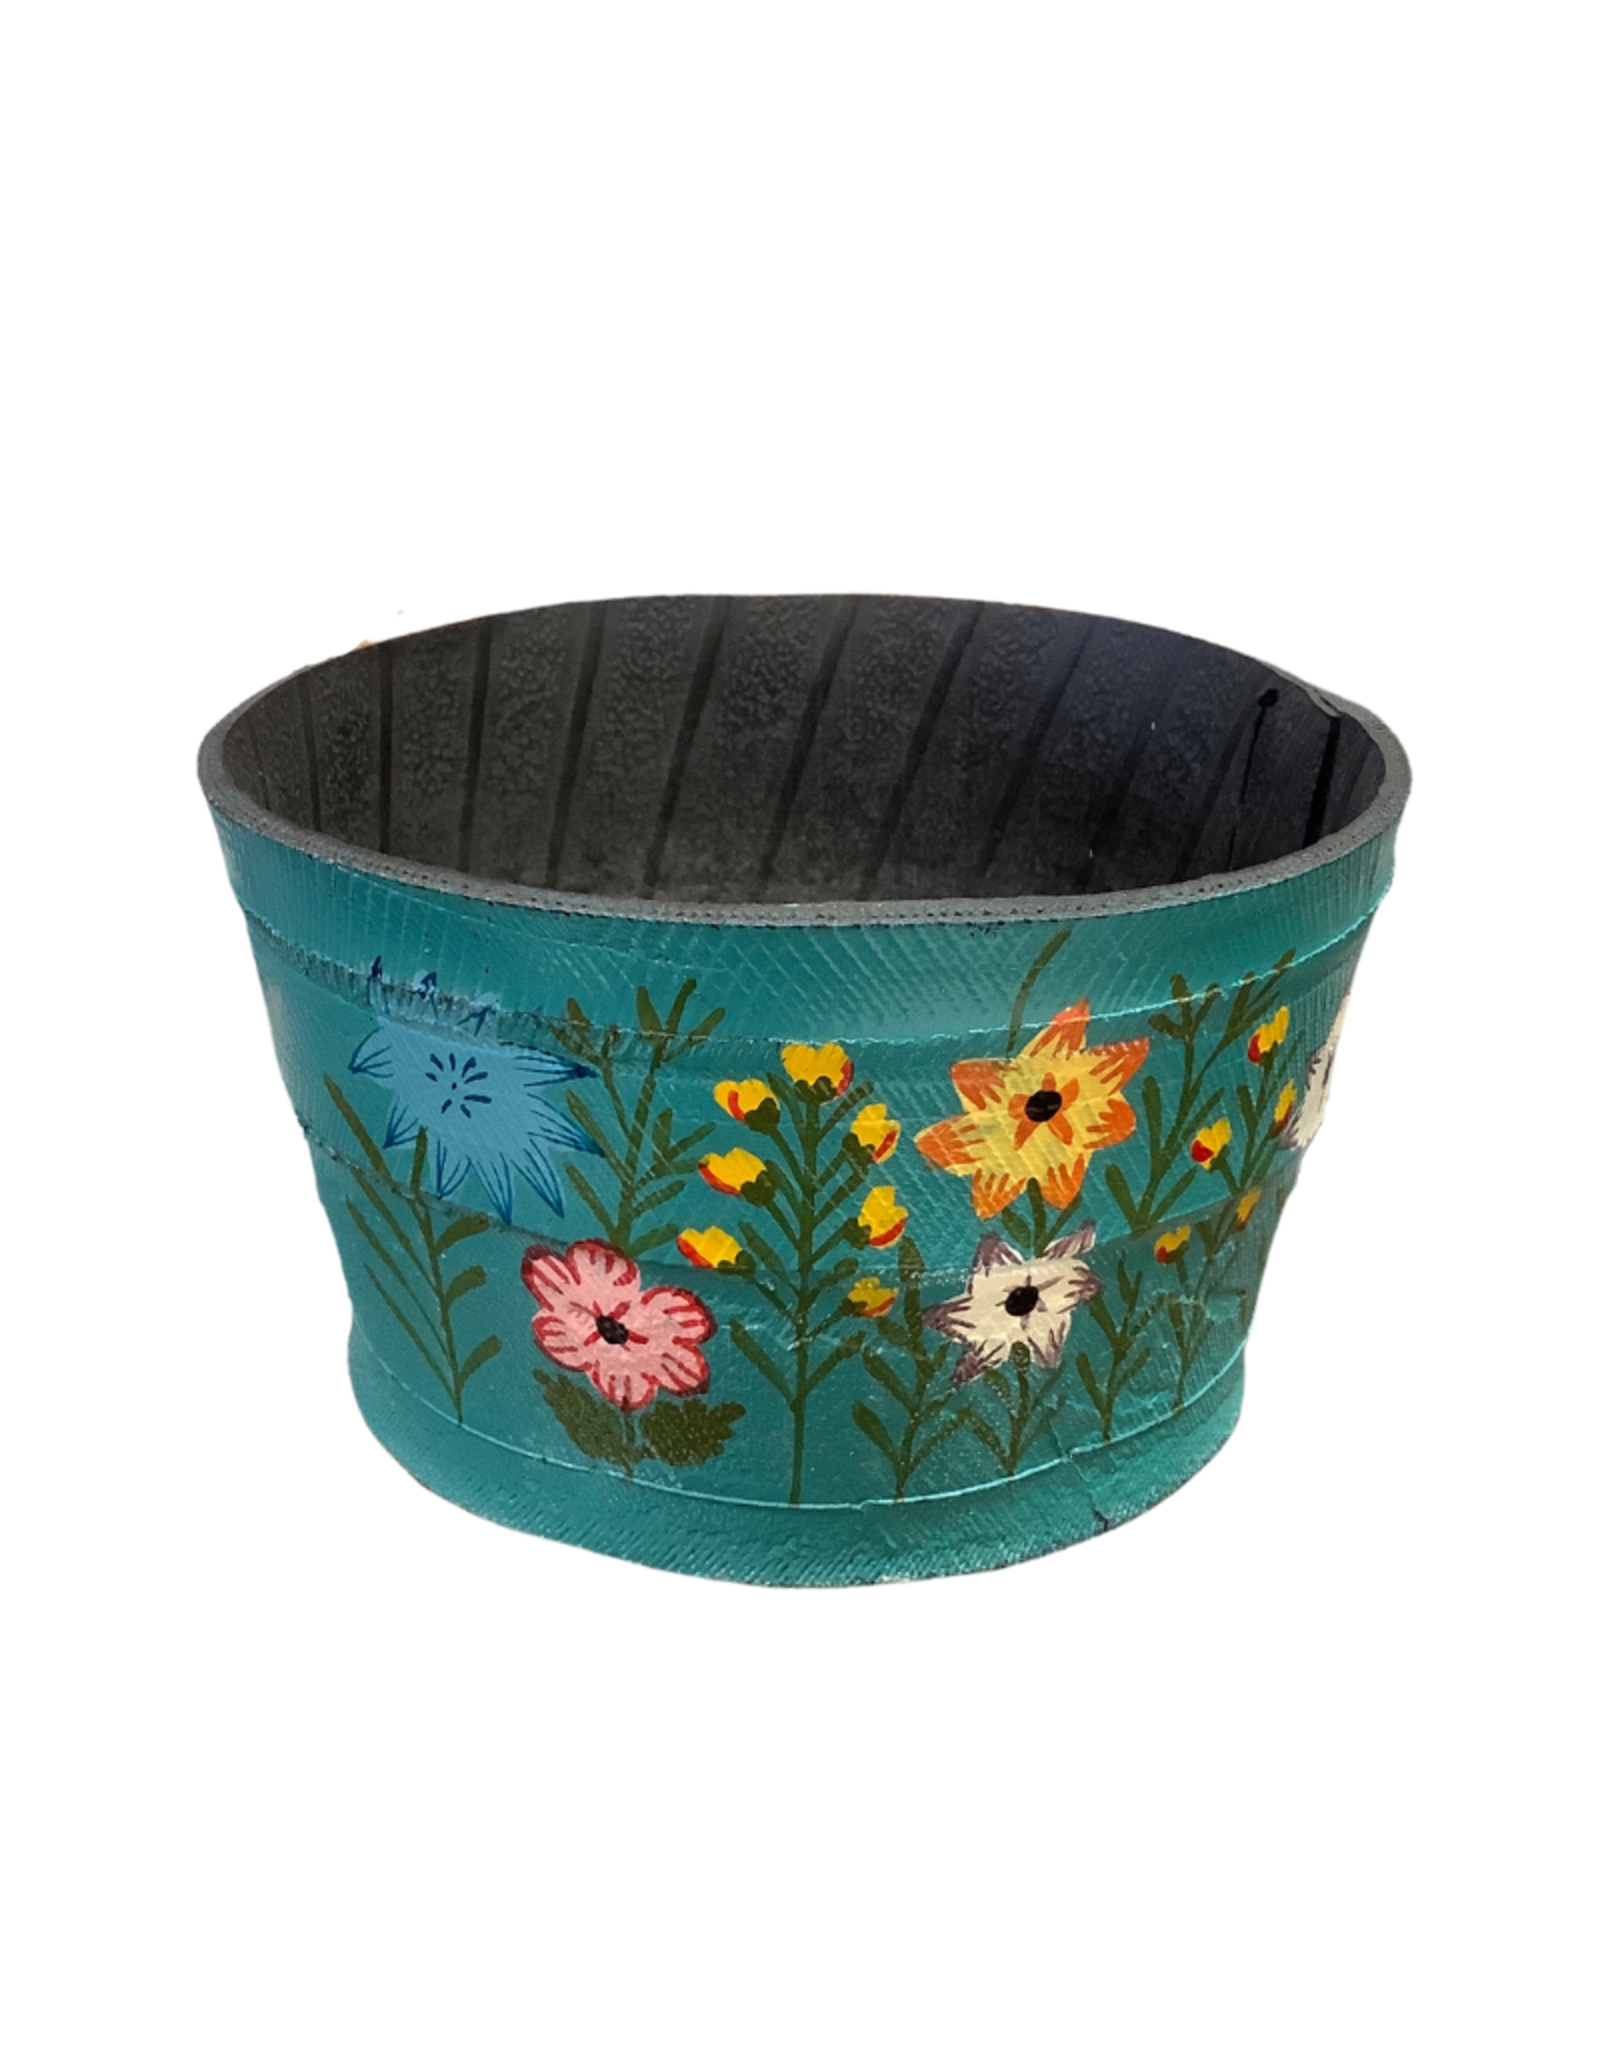 Recycled Tire Garden Planter Turquoise